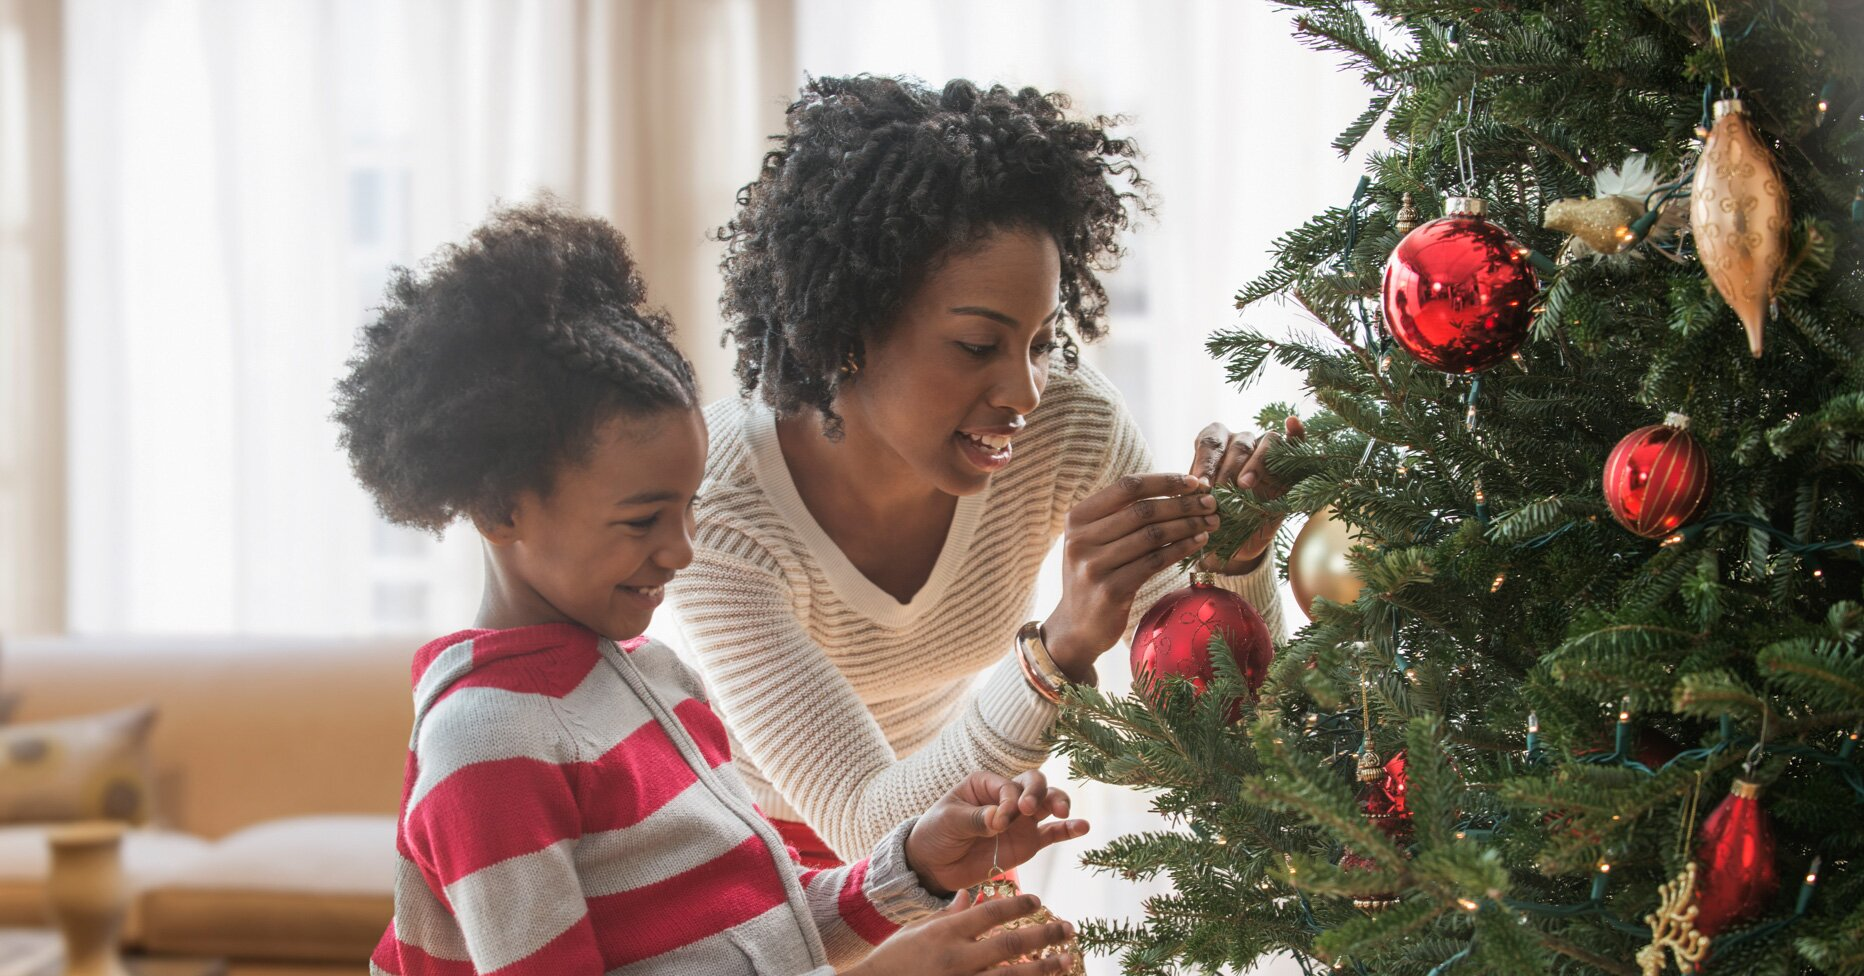 Four Ways to Make an Immediate Family-Only Holiday Feel Special